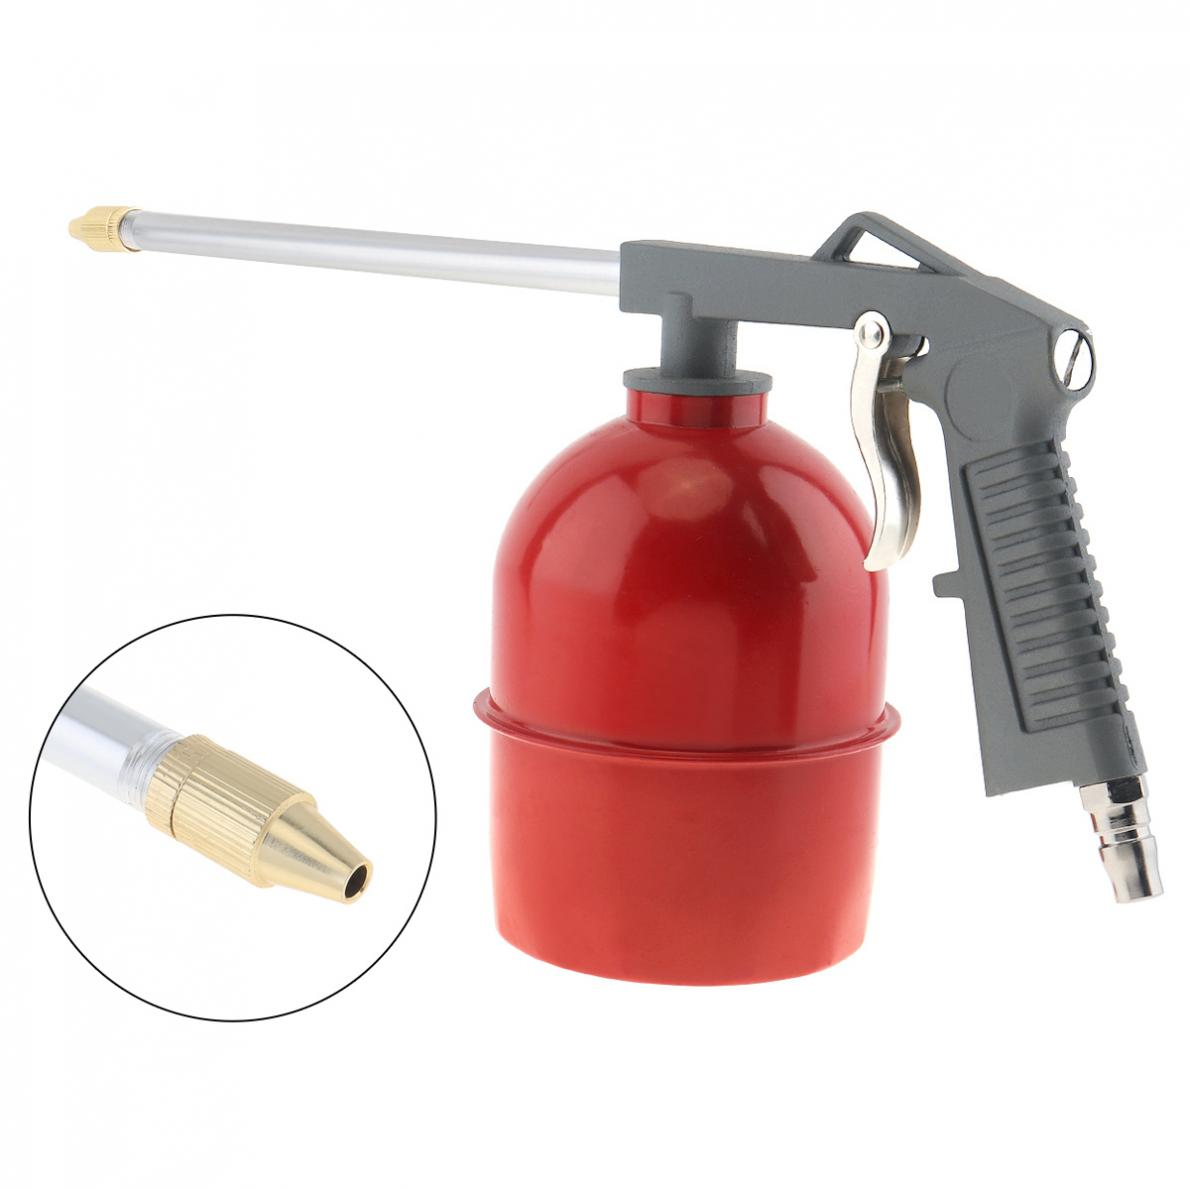 Easy To Operate Red Pot Type Pneumatic Spray Gun With 6mm Nozzle Caliber And Aluminum Pot For Furniture / Factory Facilities